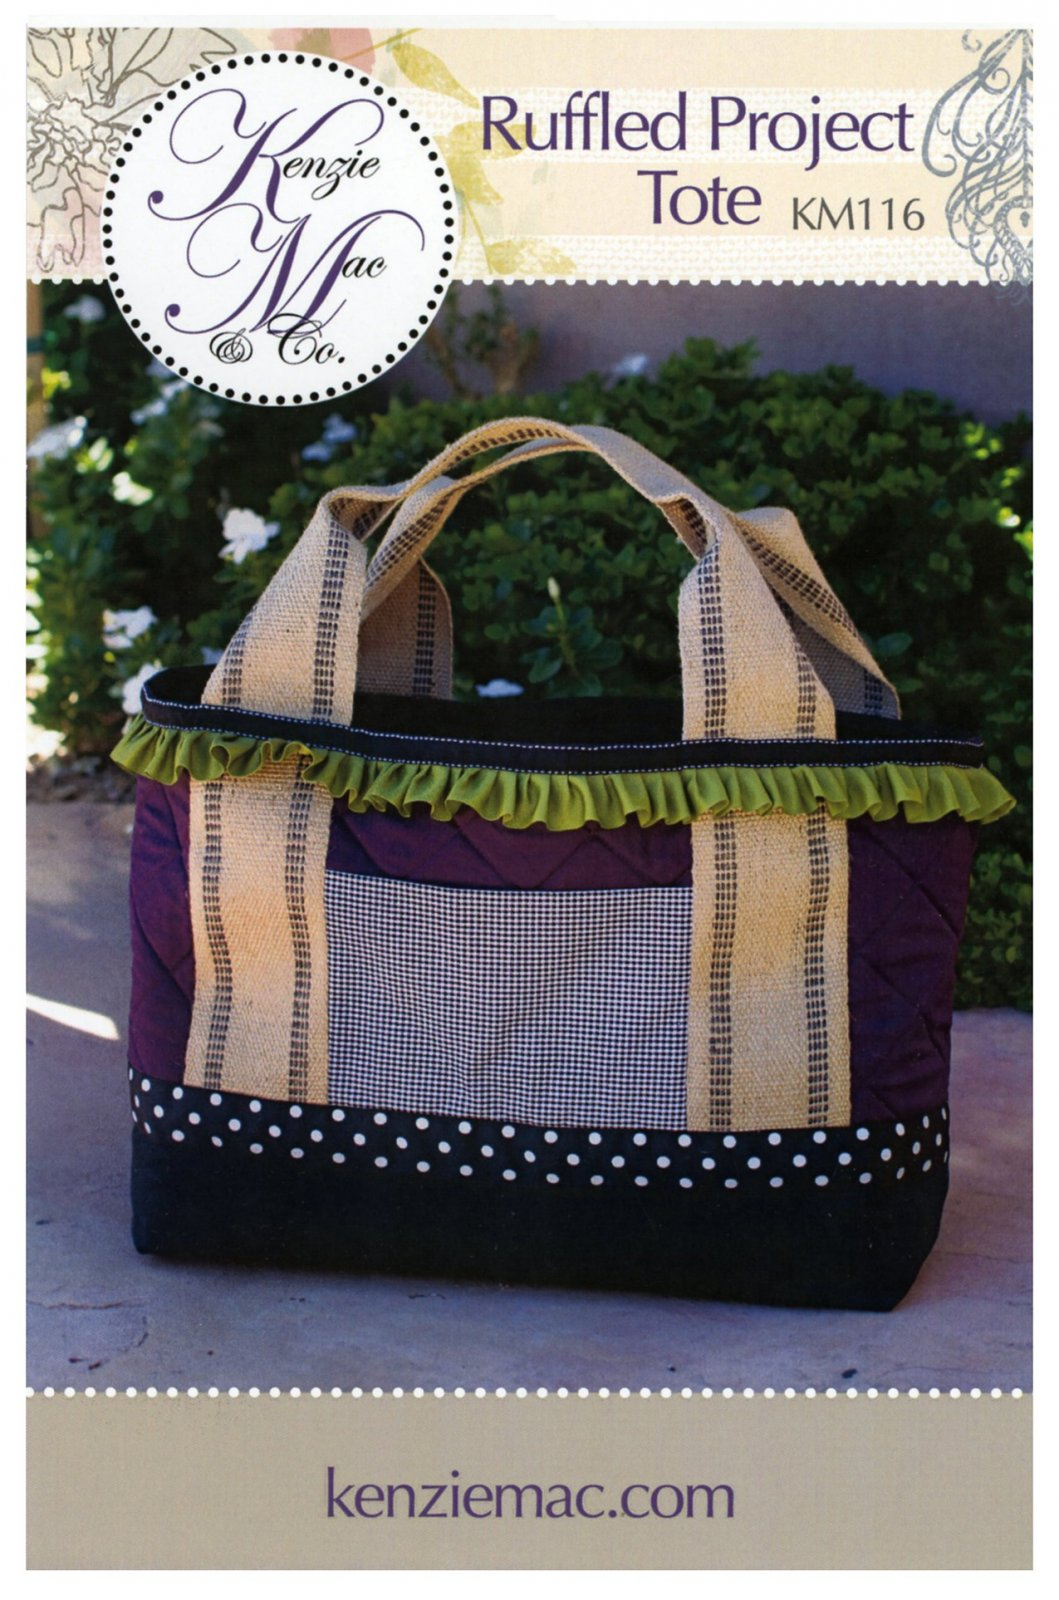 Ruffled Project Tote